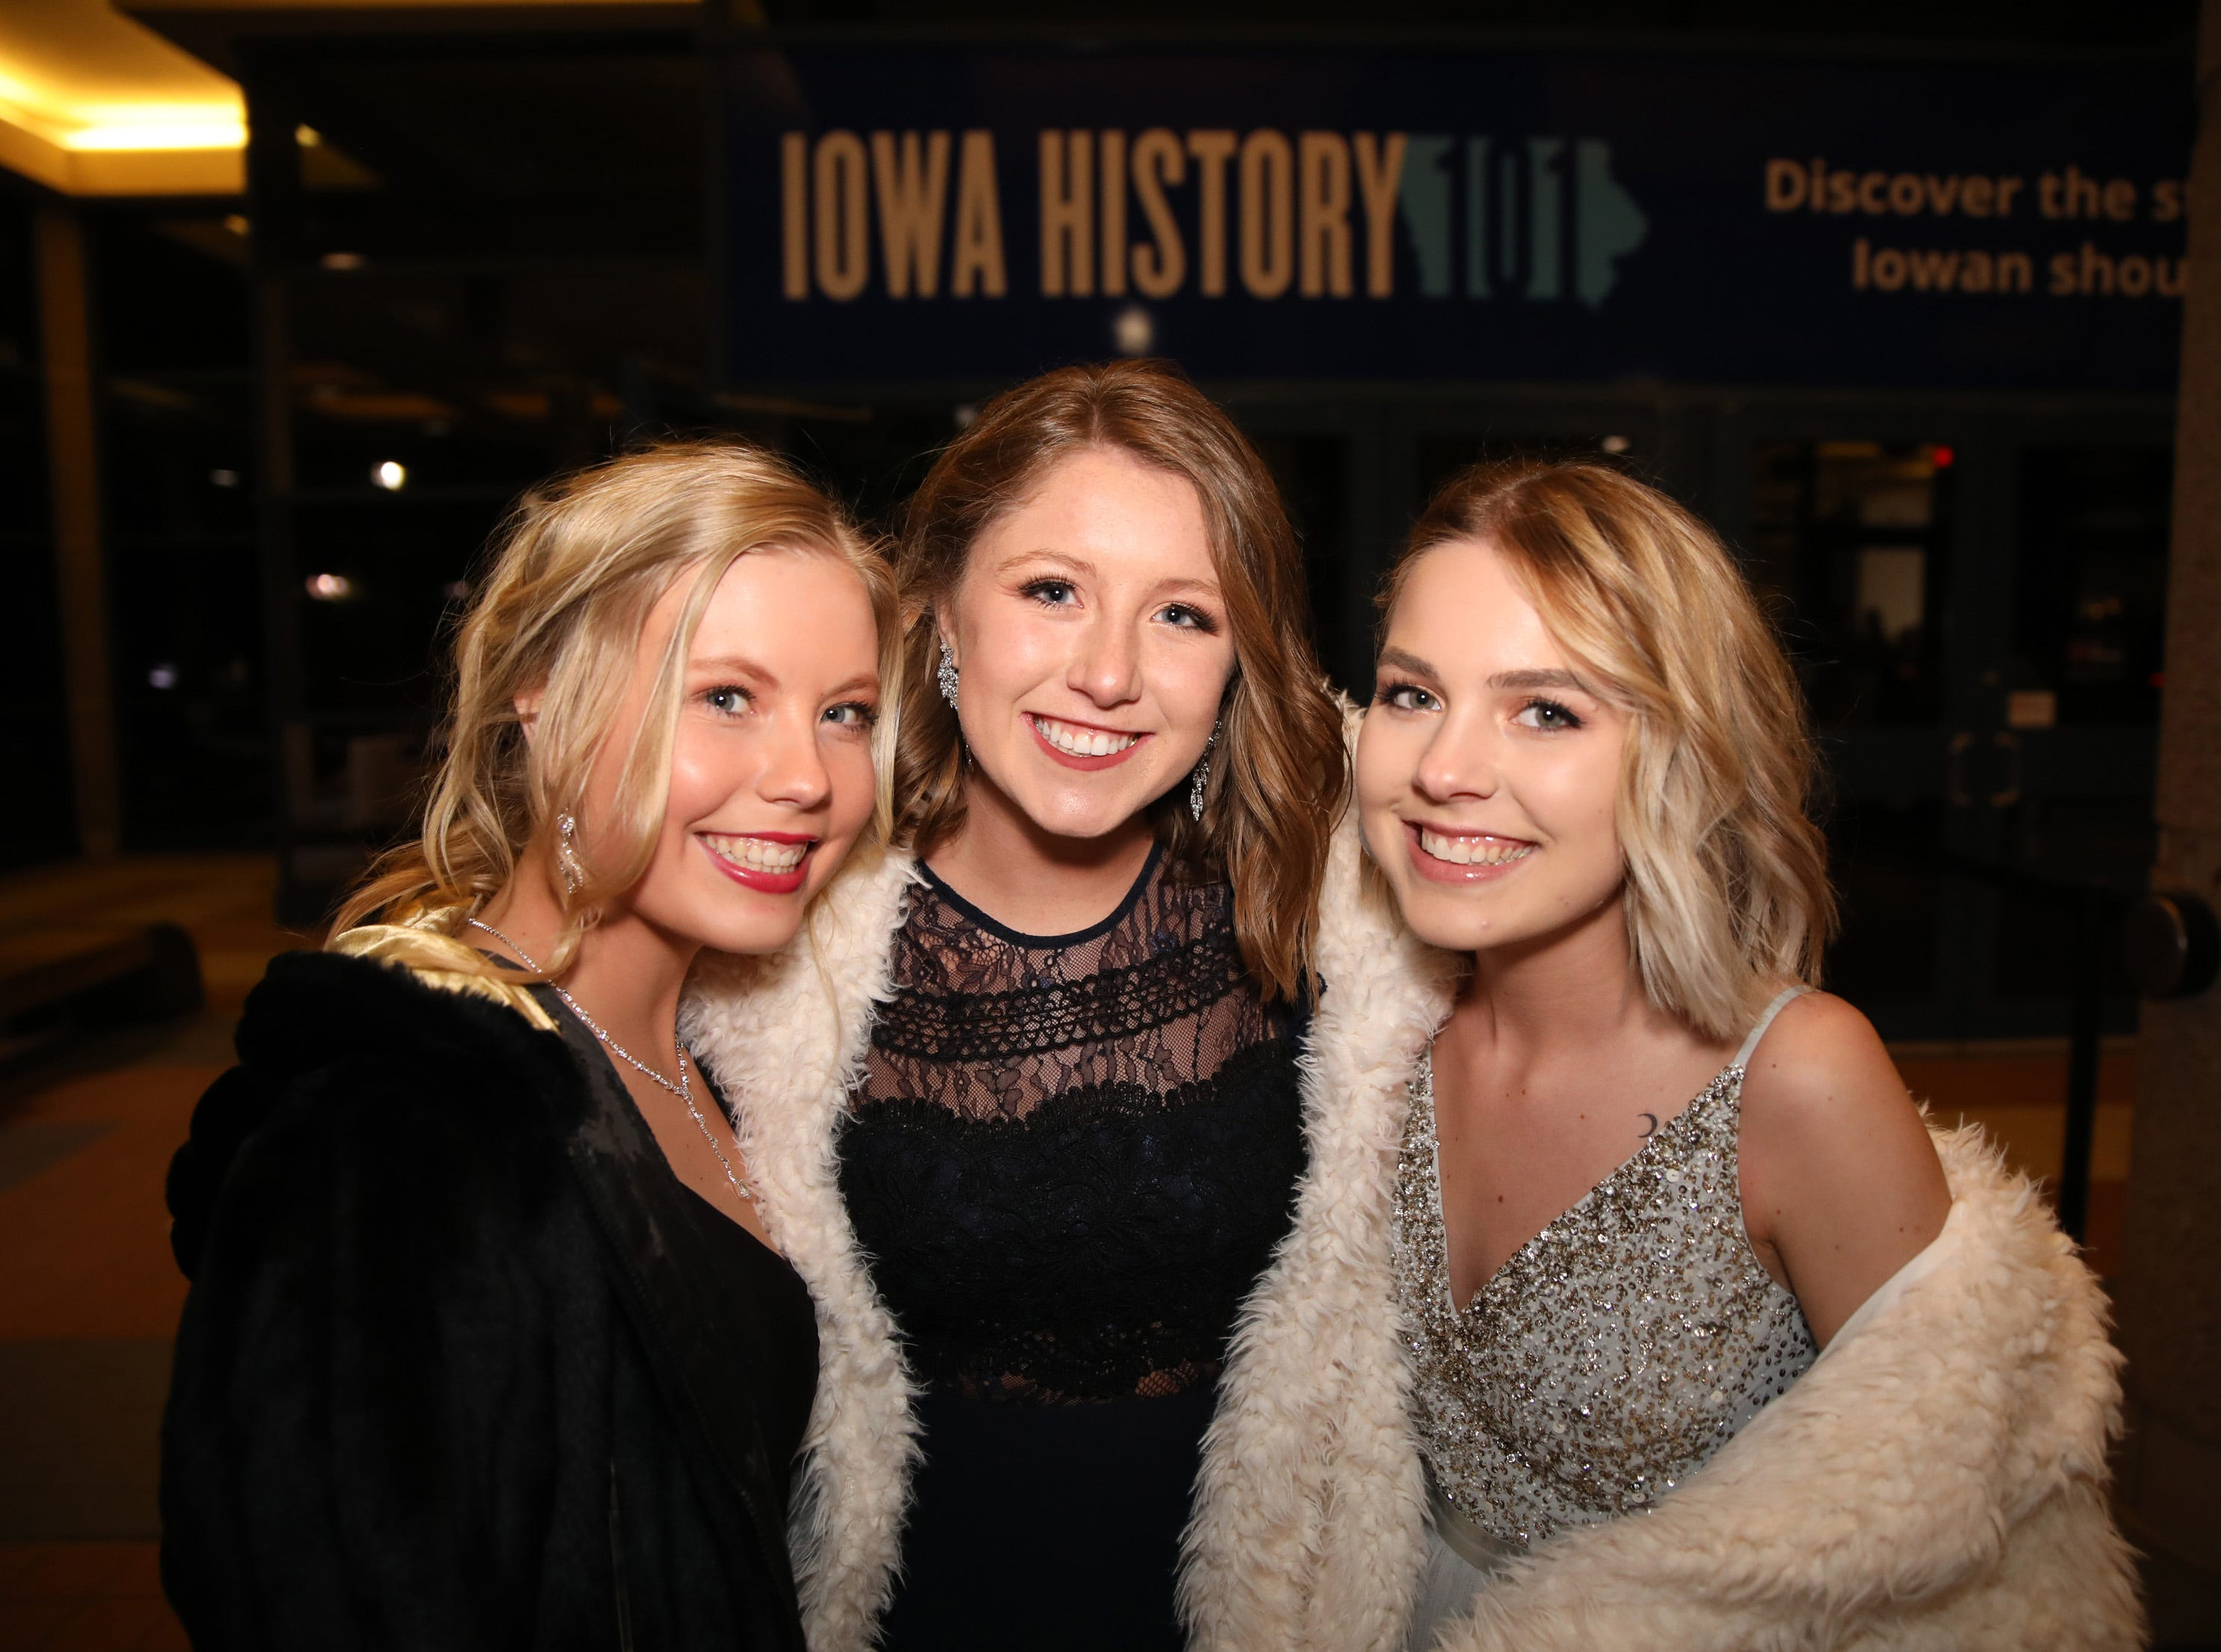 From left, seniors Rachel Ryan, Alia Smith and Ellie Backes arrive at the Ankeny Centennial High School prom at the State Historical Building in Des Moines on Saturday, April 13, 2019.